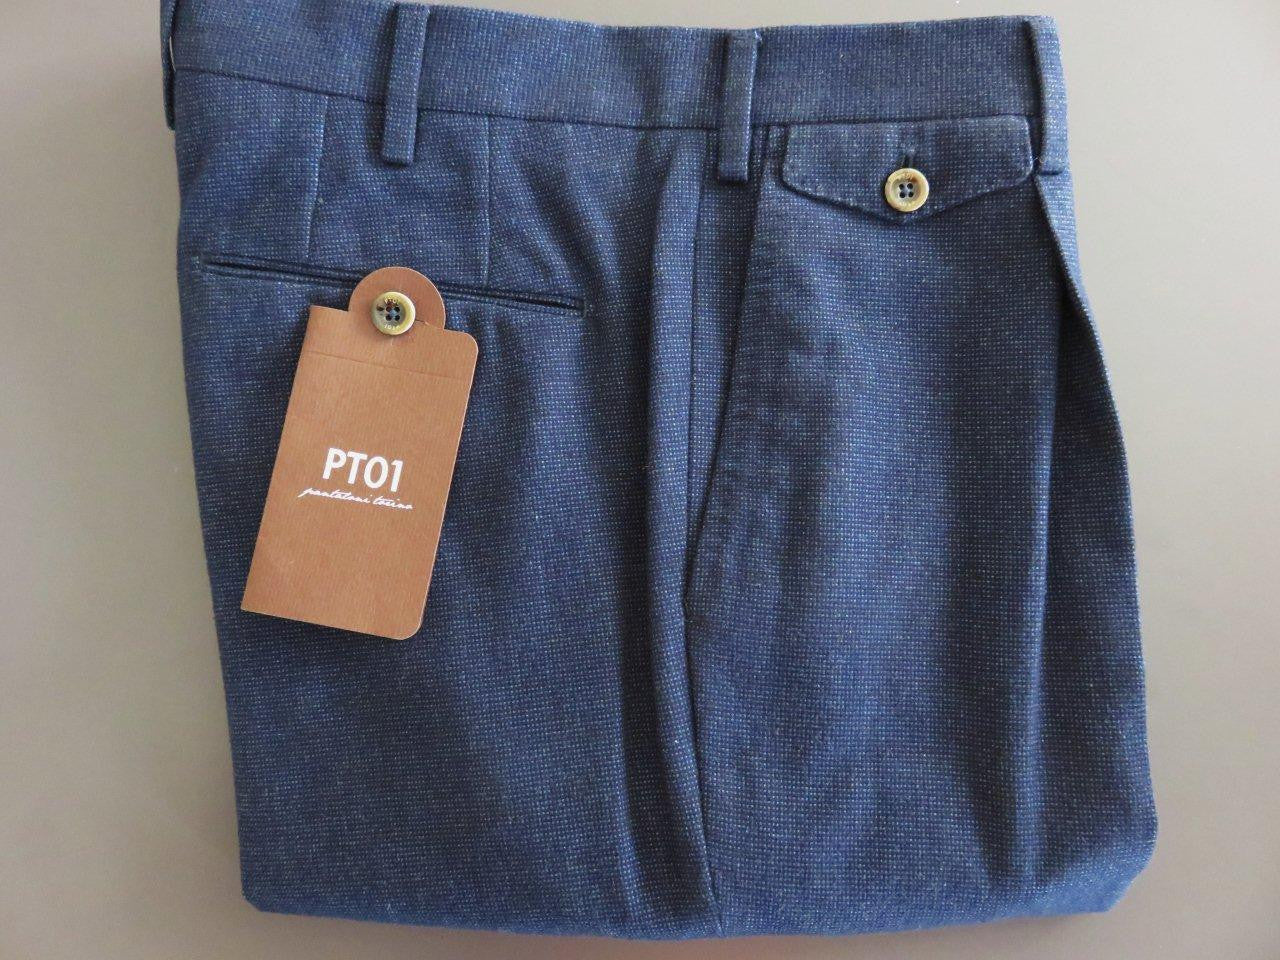 PT01 Pantaloni Torino - Business Luxury